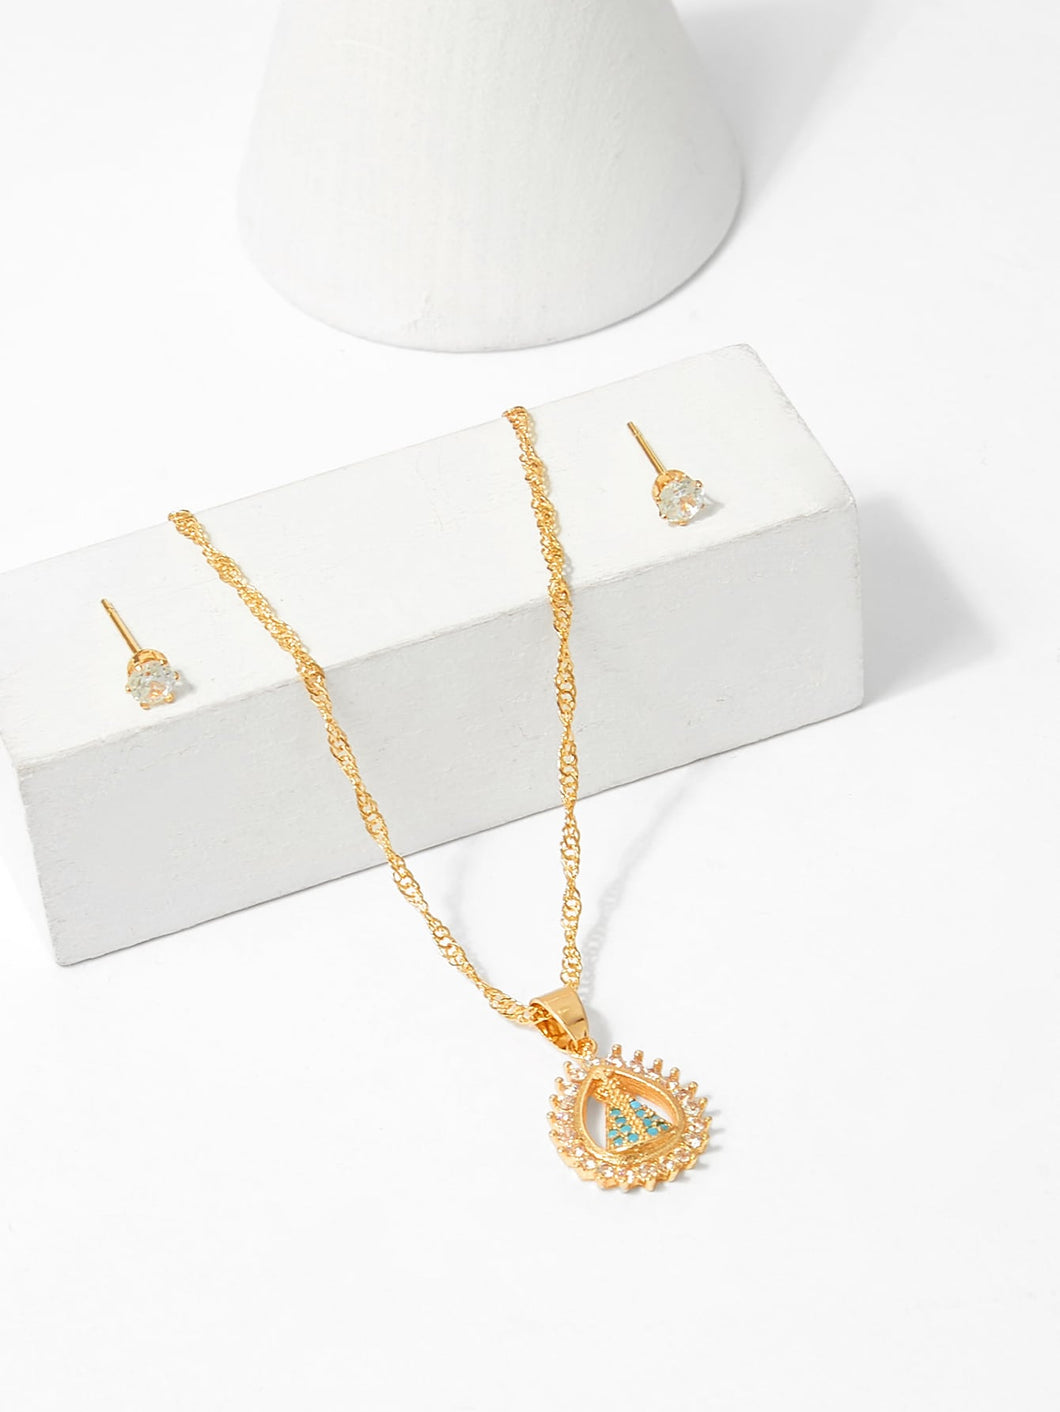 Sarahi Waterdrop Pendant Necklace And Earrings Set - Didi Royale